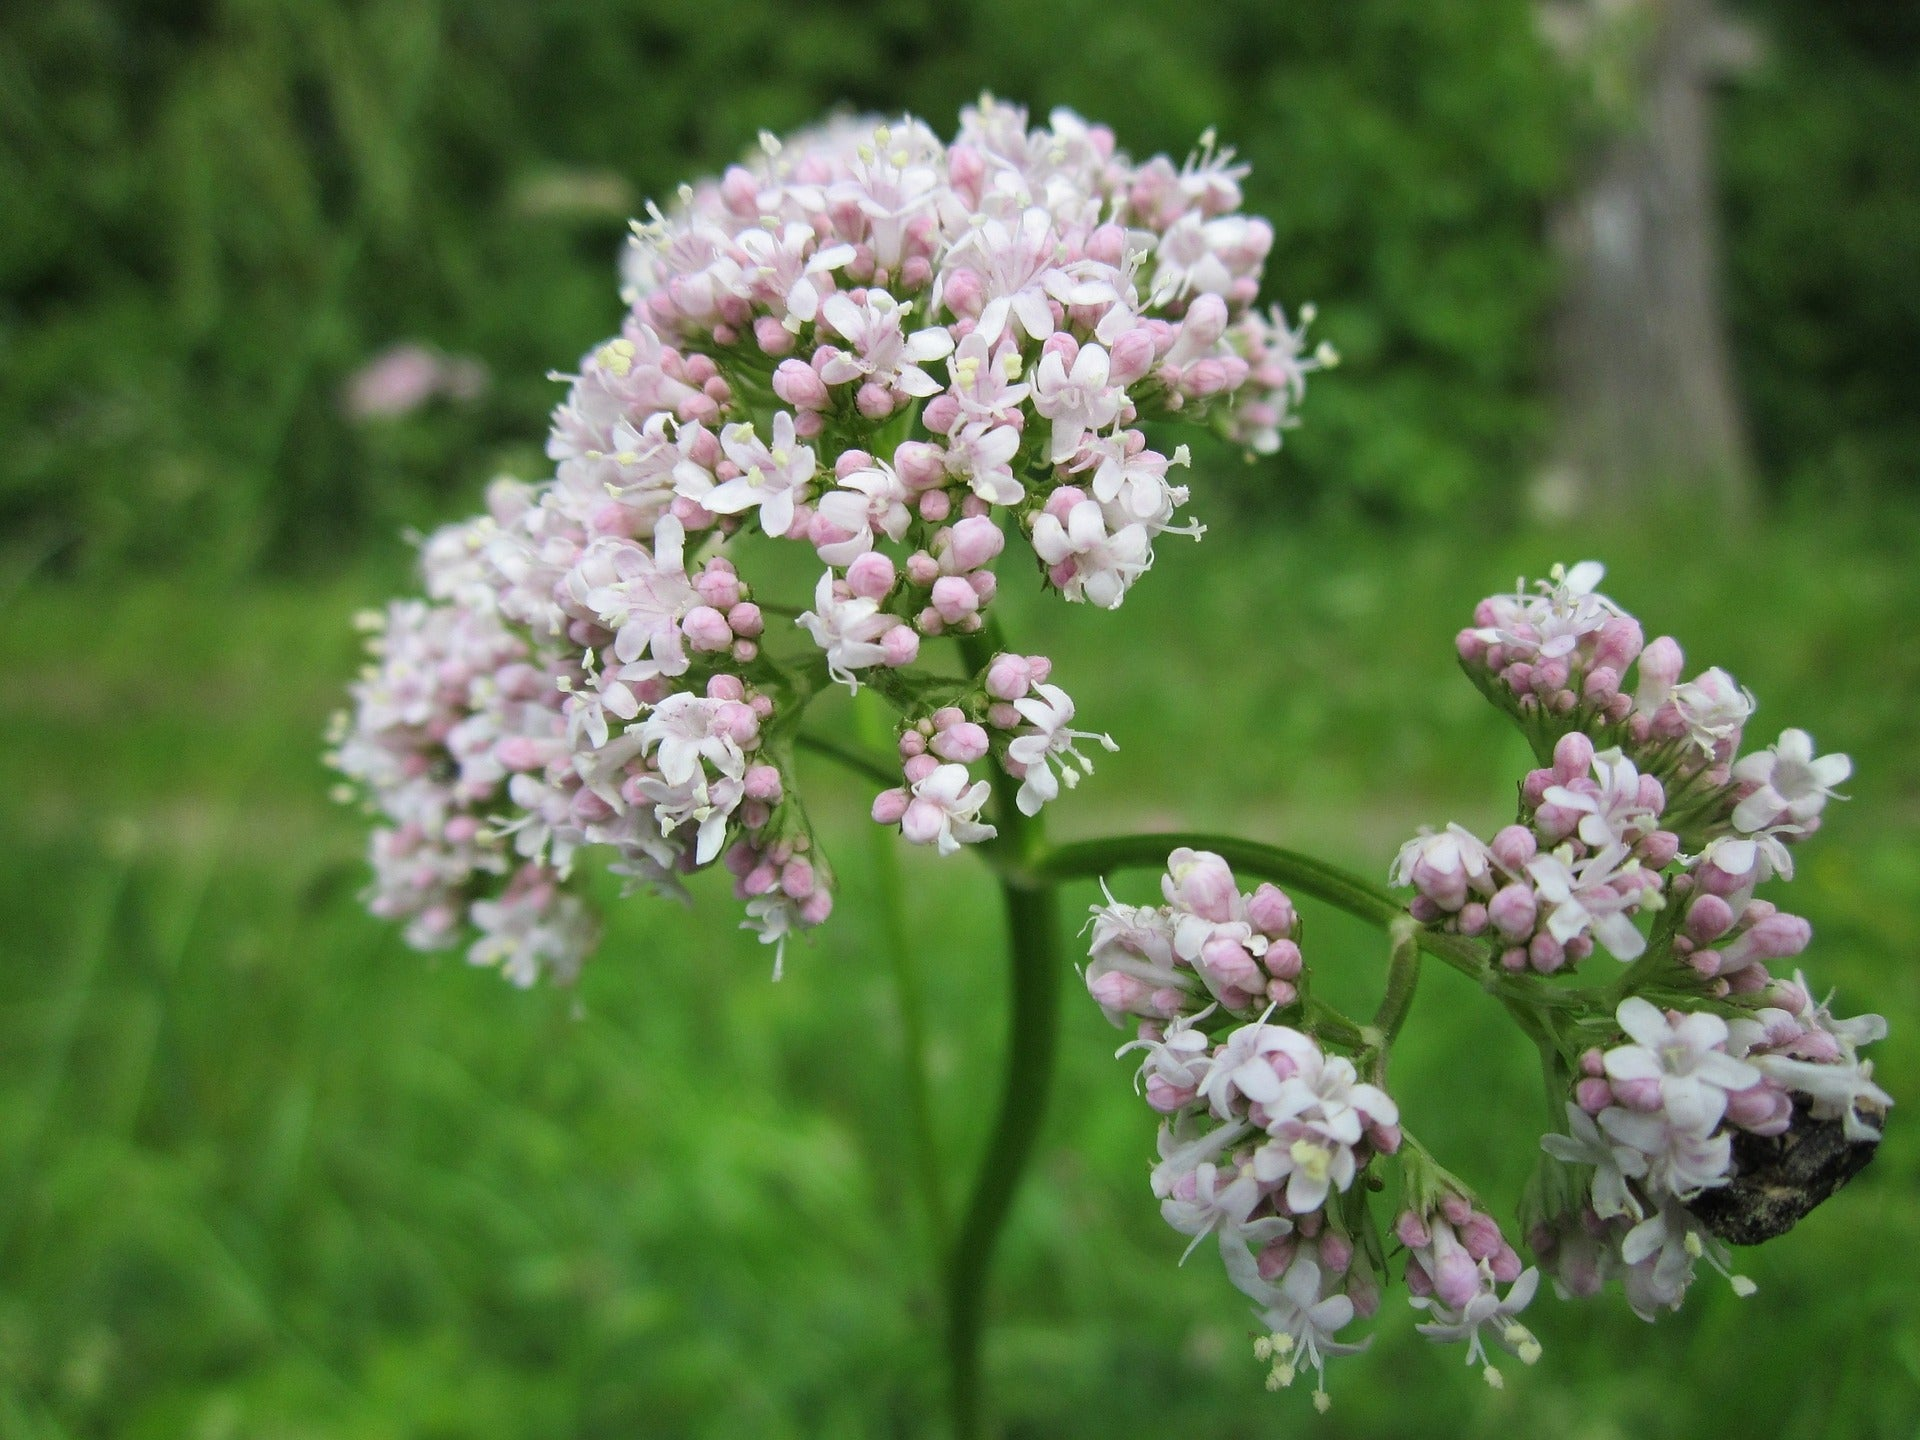 The Essential Benefits of Valerian - Uses, Doses and Interactions